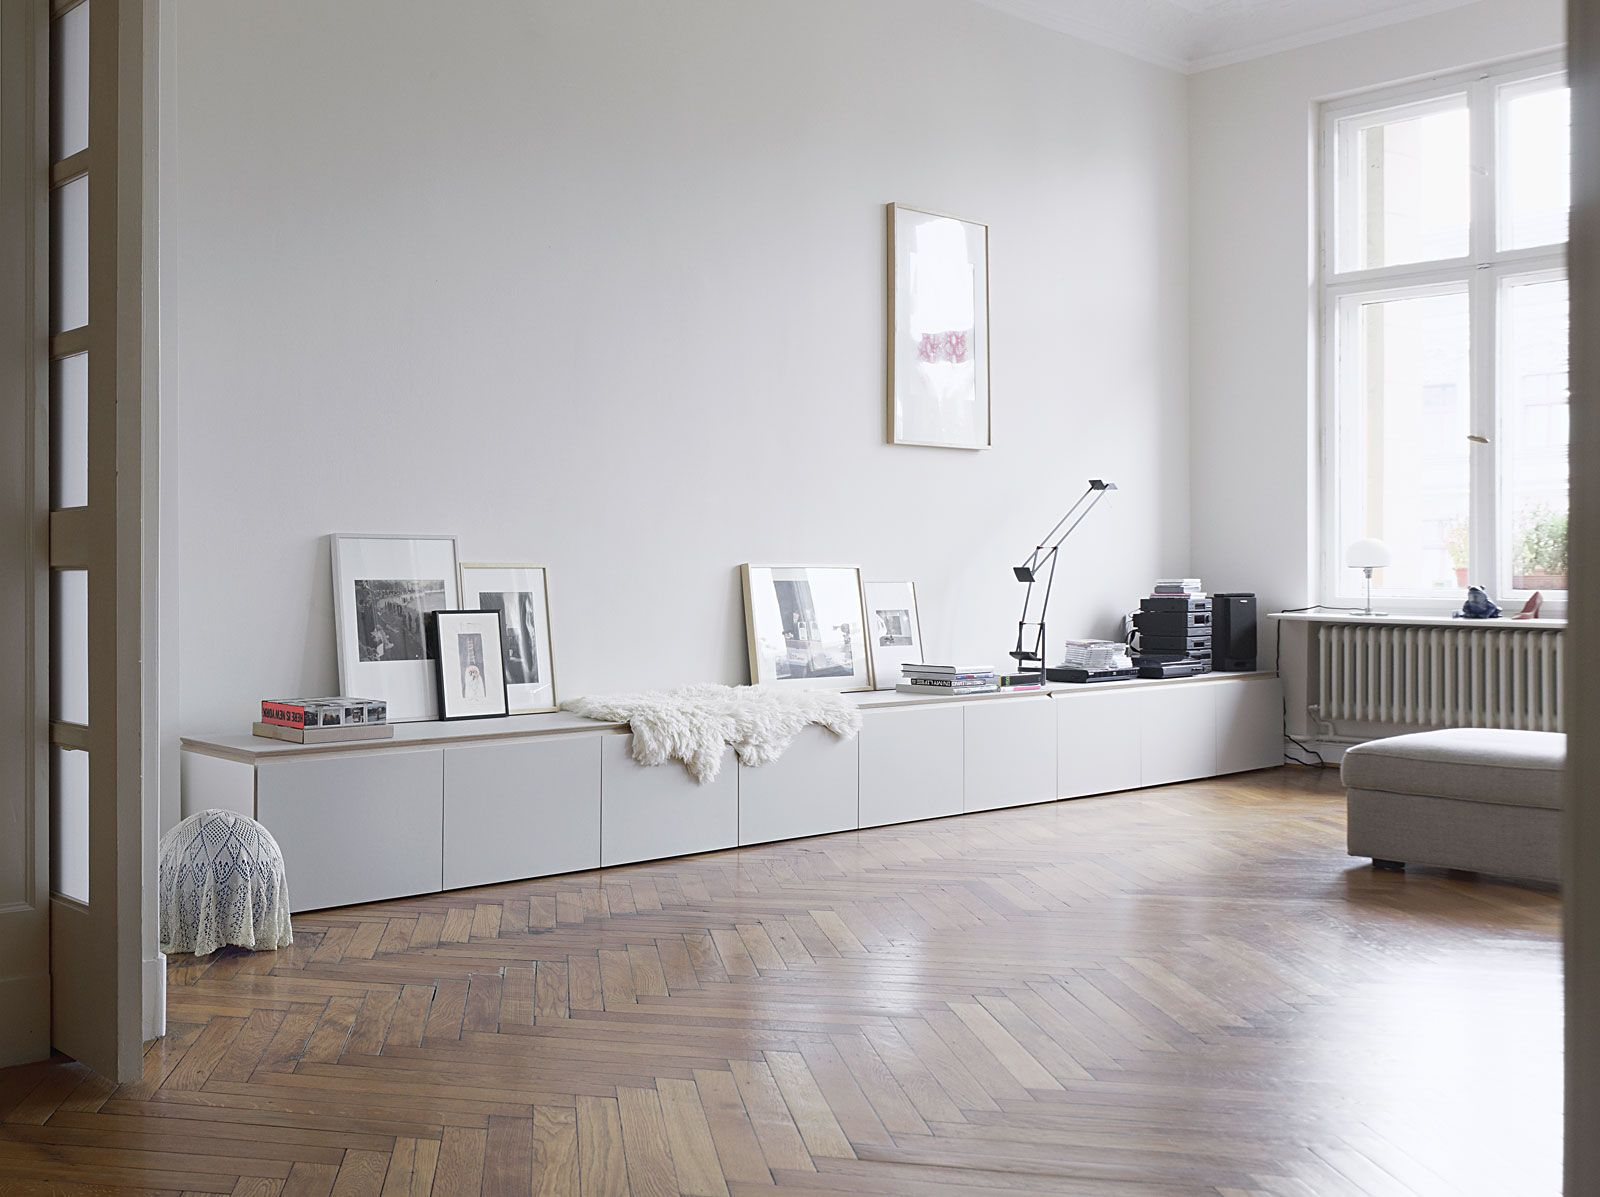 Meuble Bas Long Salon Long Clean White Storage Ikea Besta May Work For This Look